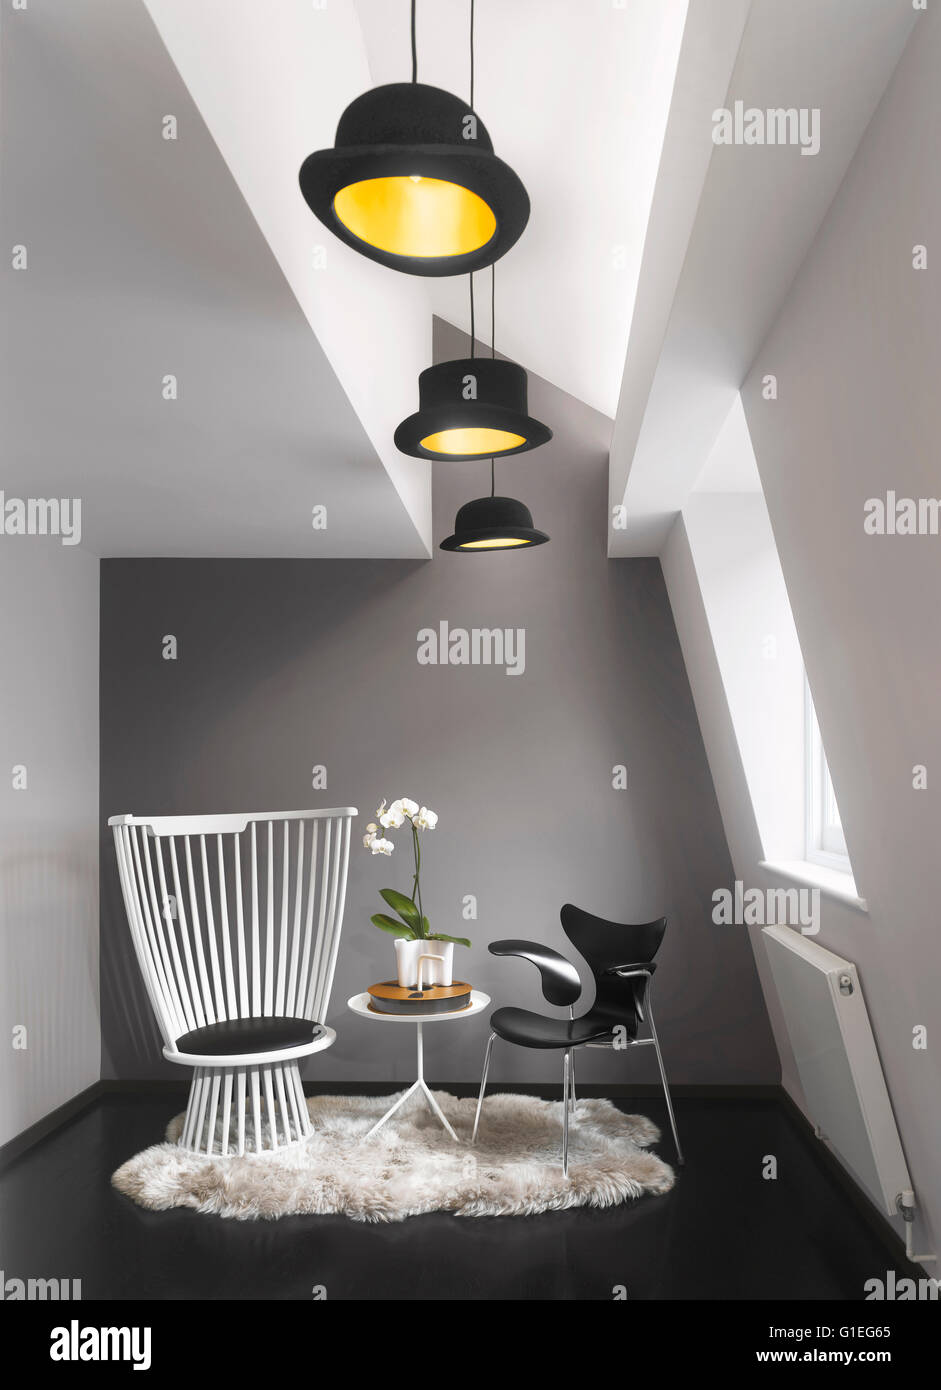 Dressing Room in attic space at front of house. Modern furniture in a monochrome space - Stock Image